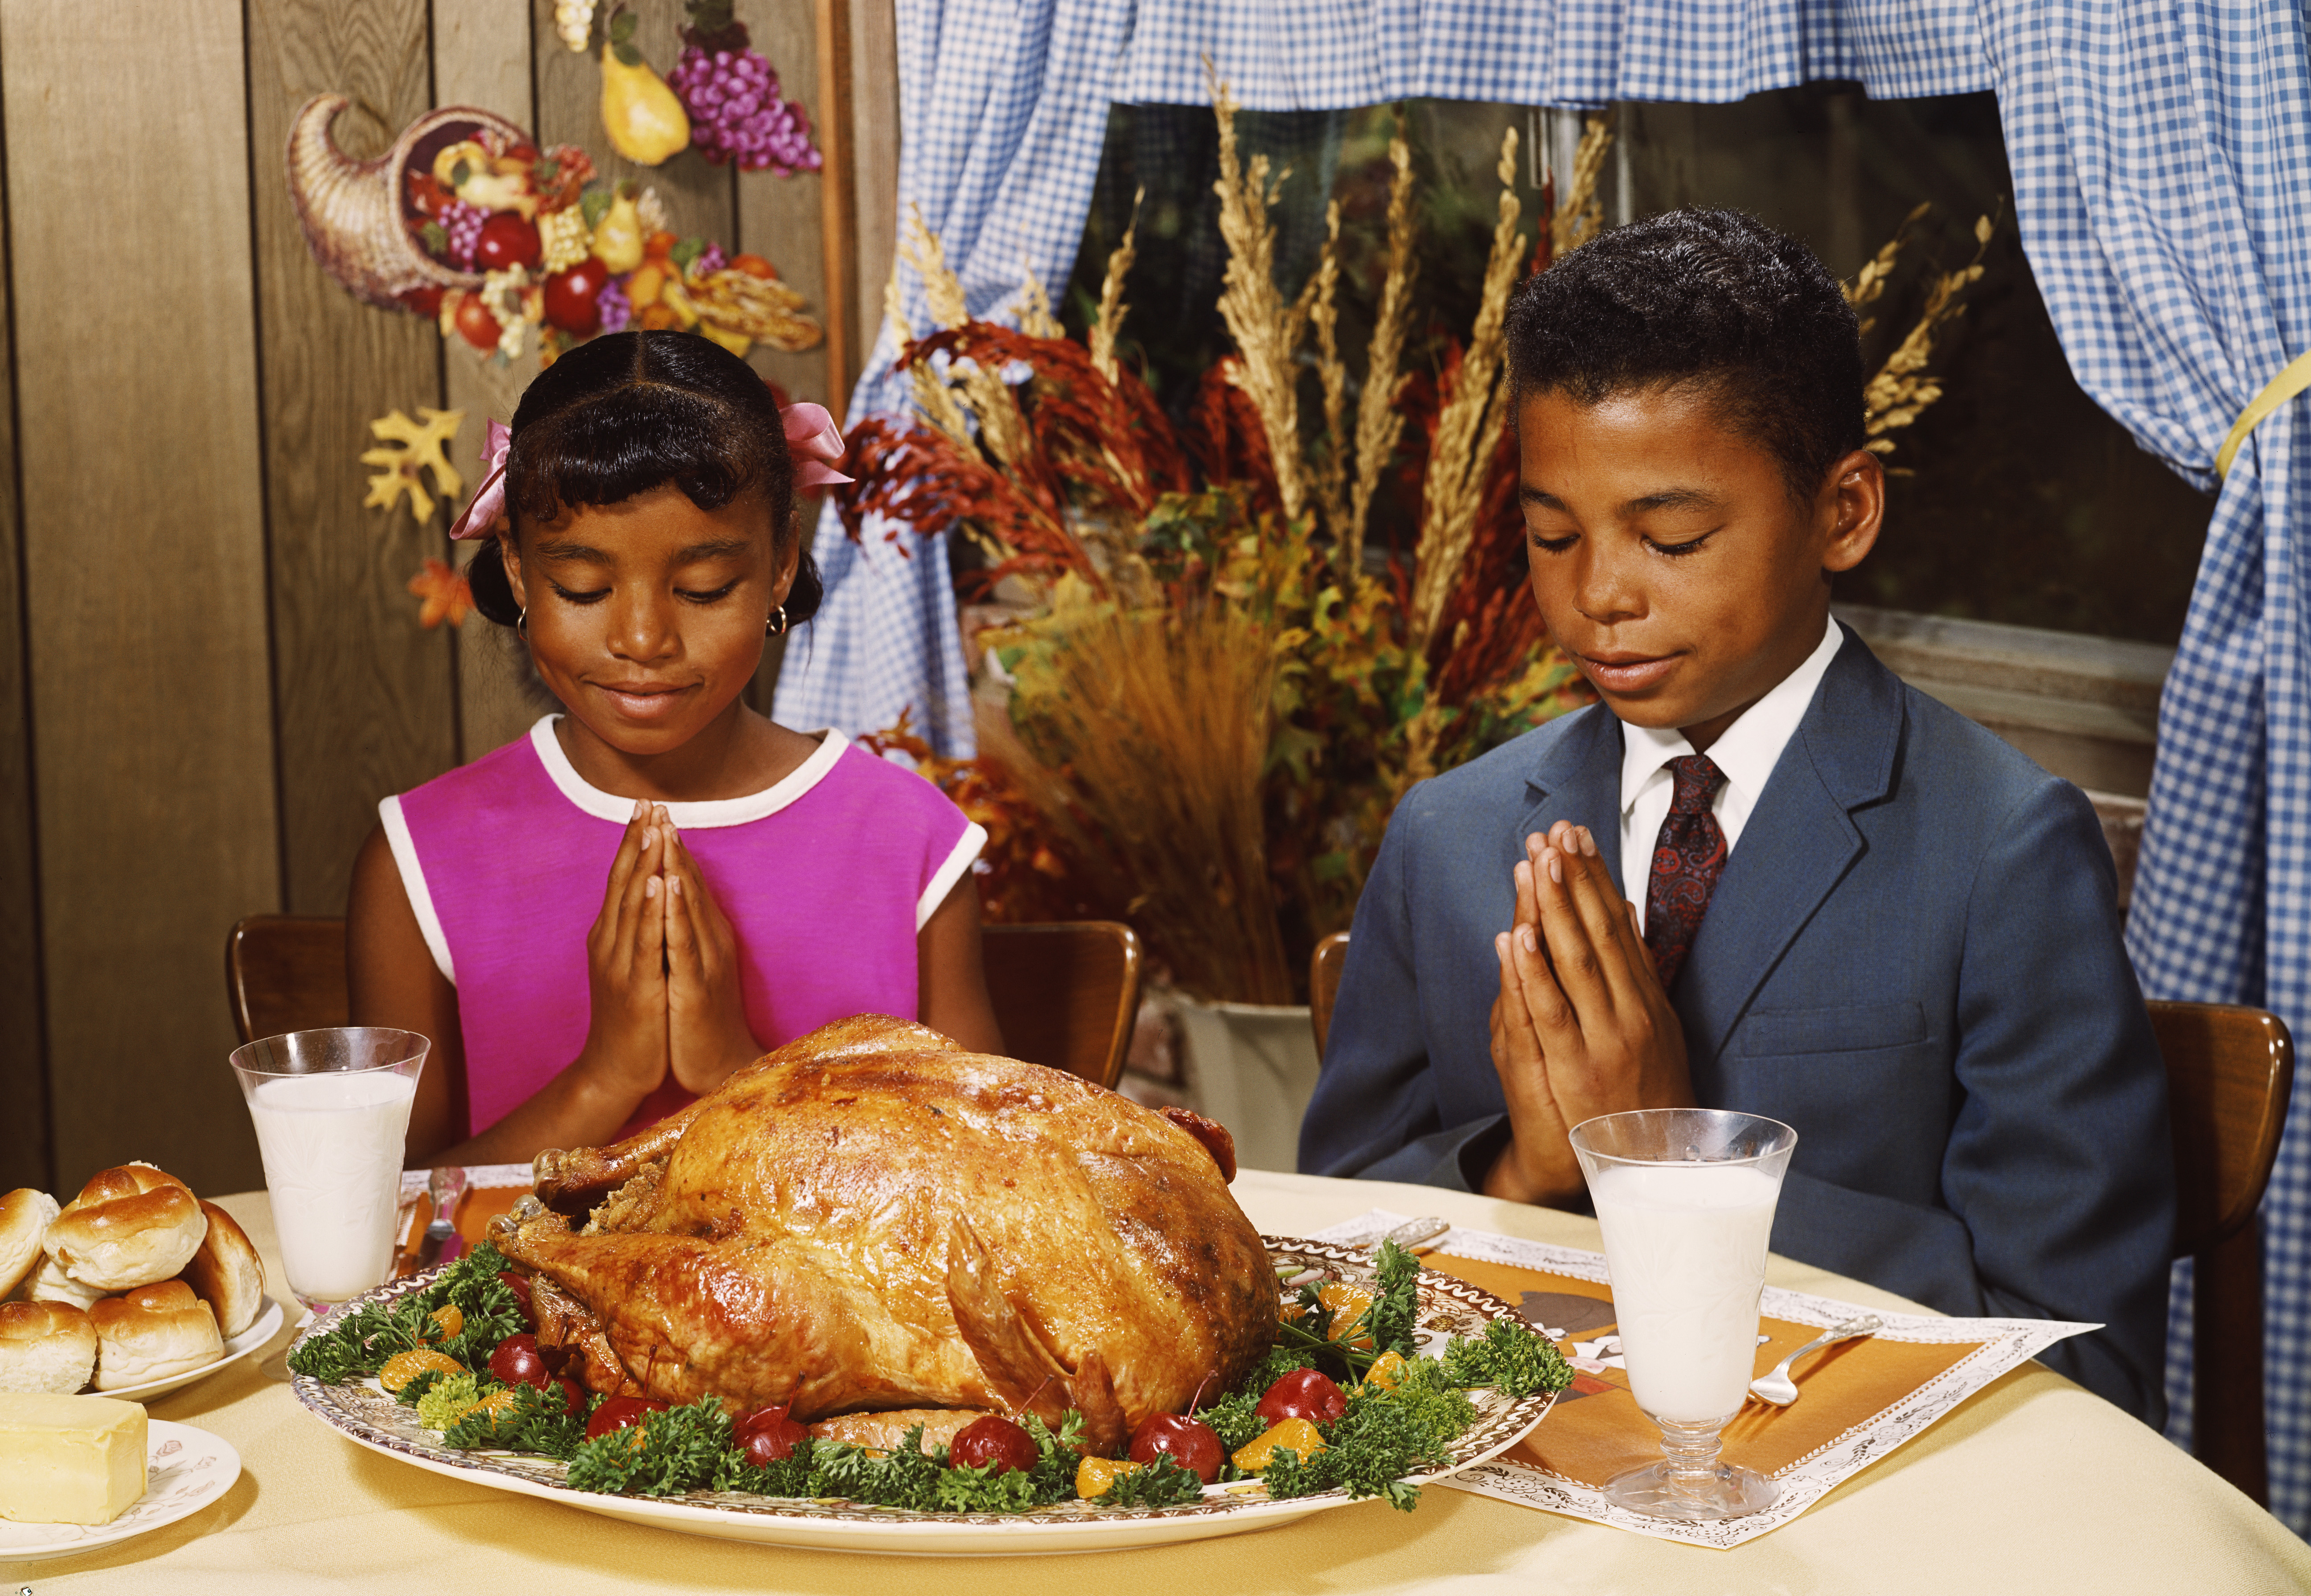 Image of the 1970s of a boy and girl saying grace at the dinner table with turkey in front of them.